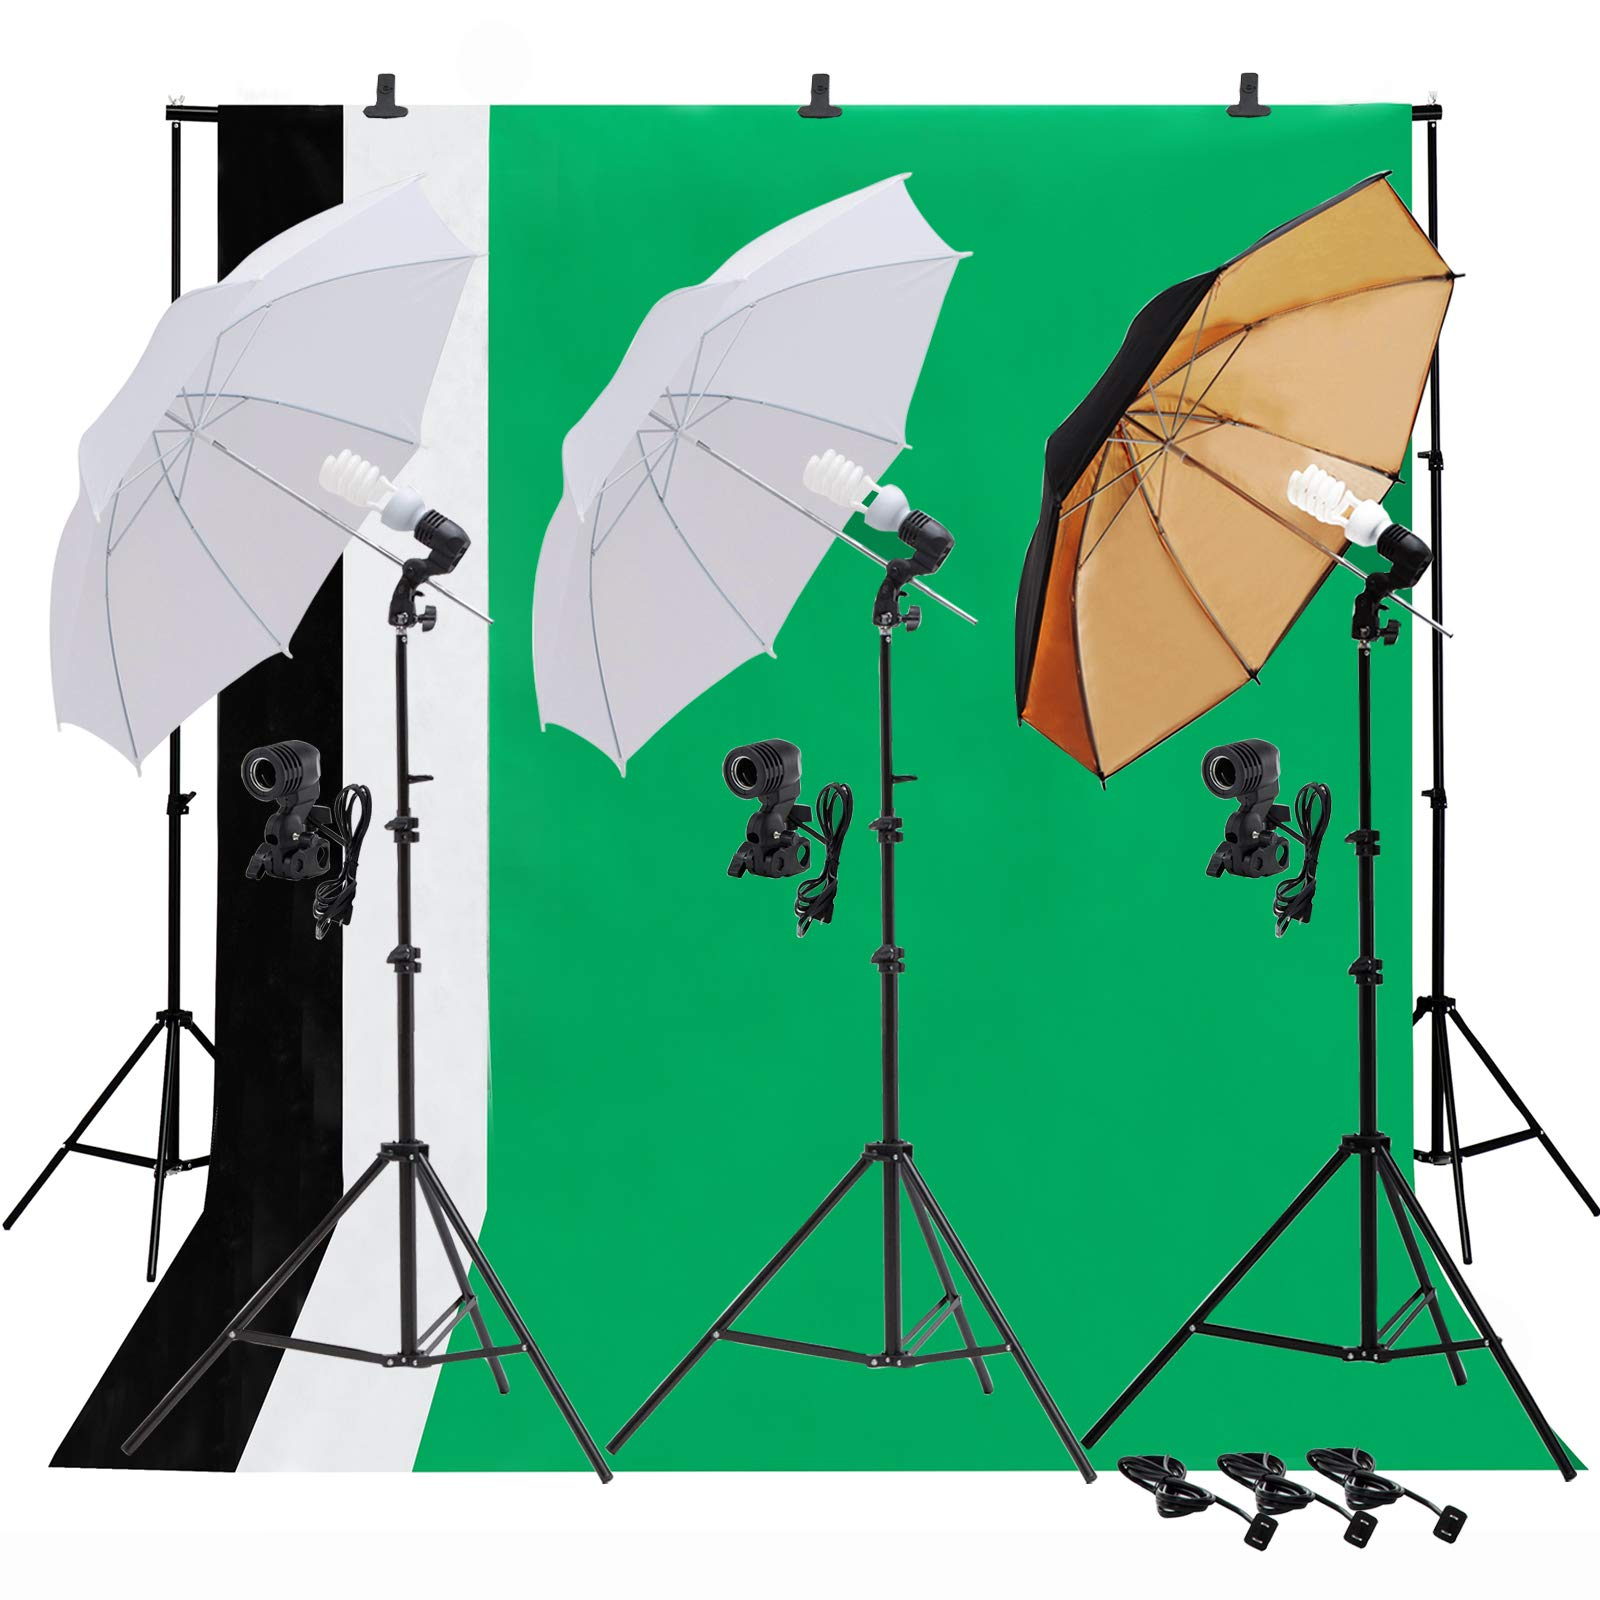 SUNCOO Video Studio Umbrella Lighting Kit,Green Screen with Stand, Continuous Lights with 10ft Background Support Stand System Backdrop Portable Bag, 3 Bulbs, Portfolio Shooting by SUNCOO